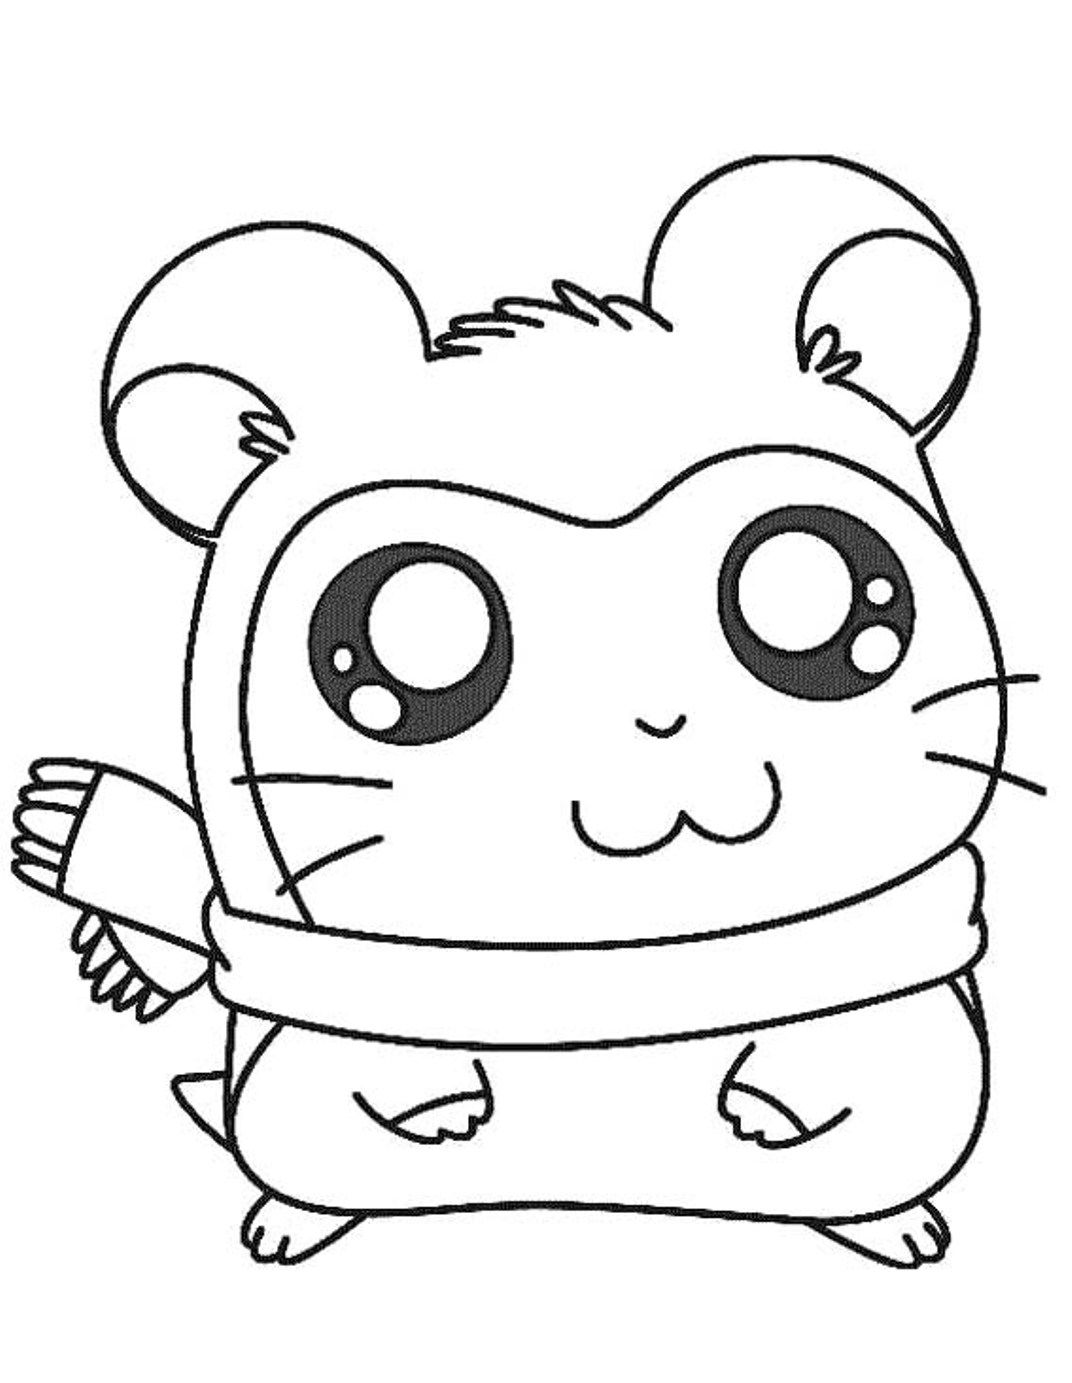 Ginnie Pig Coloring Pages - Coloring Home